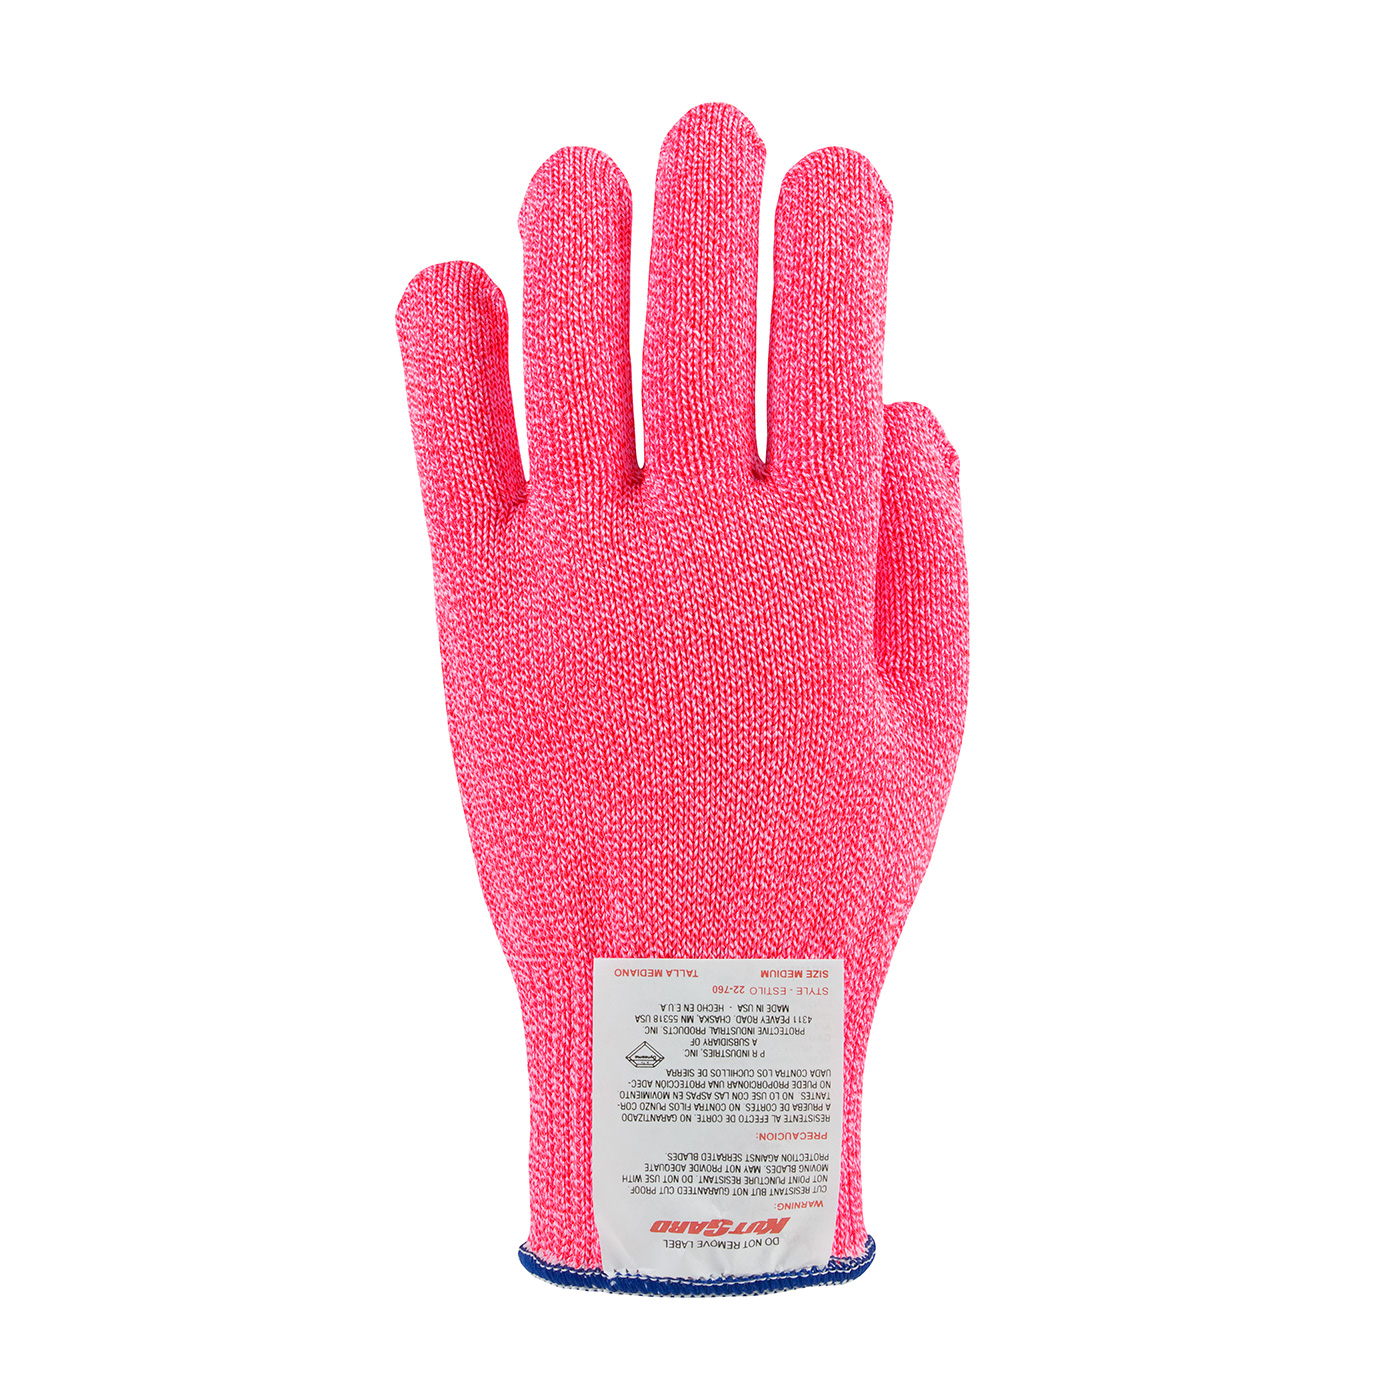 #22-750NP PIP® Neon Pink Kut-Gard® Dyneema® Antimicrobial Glove - Light Weight